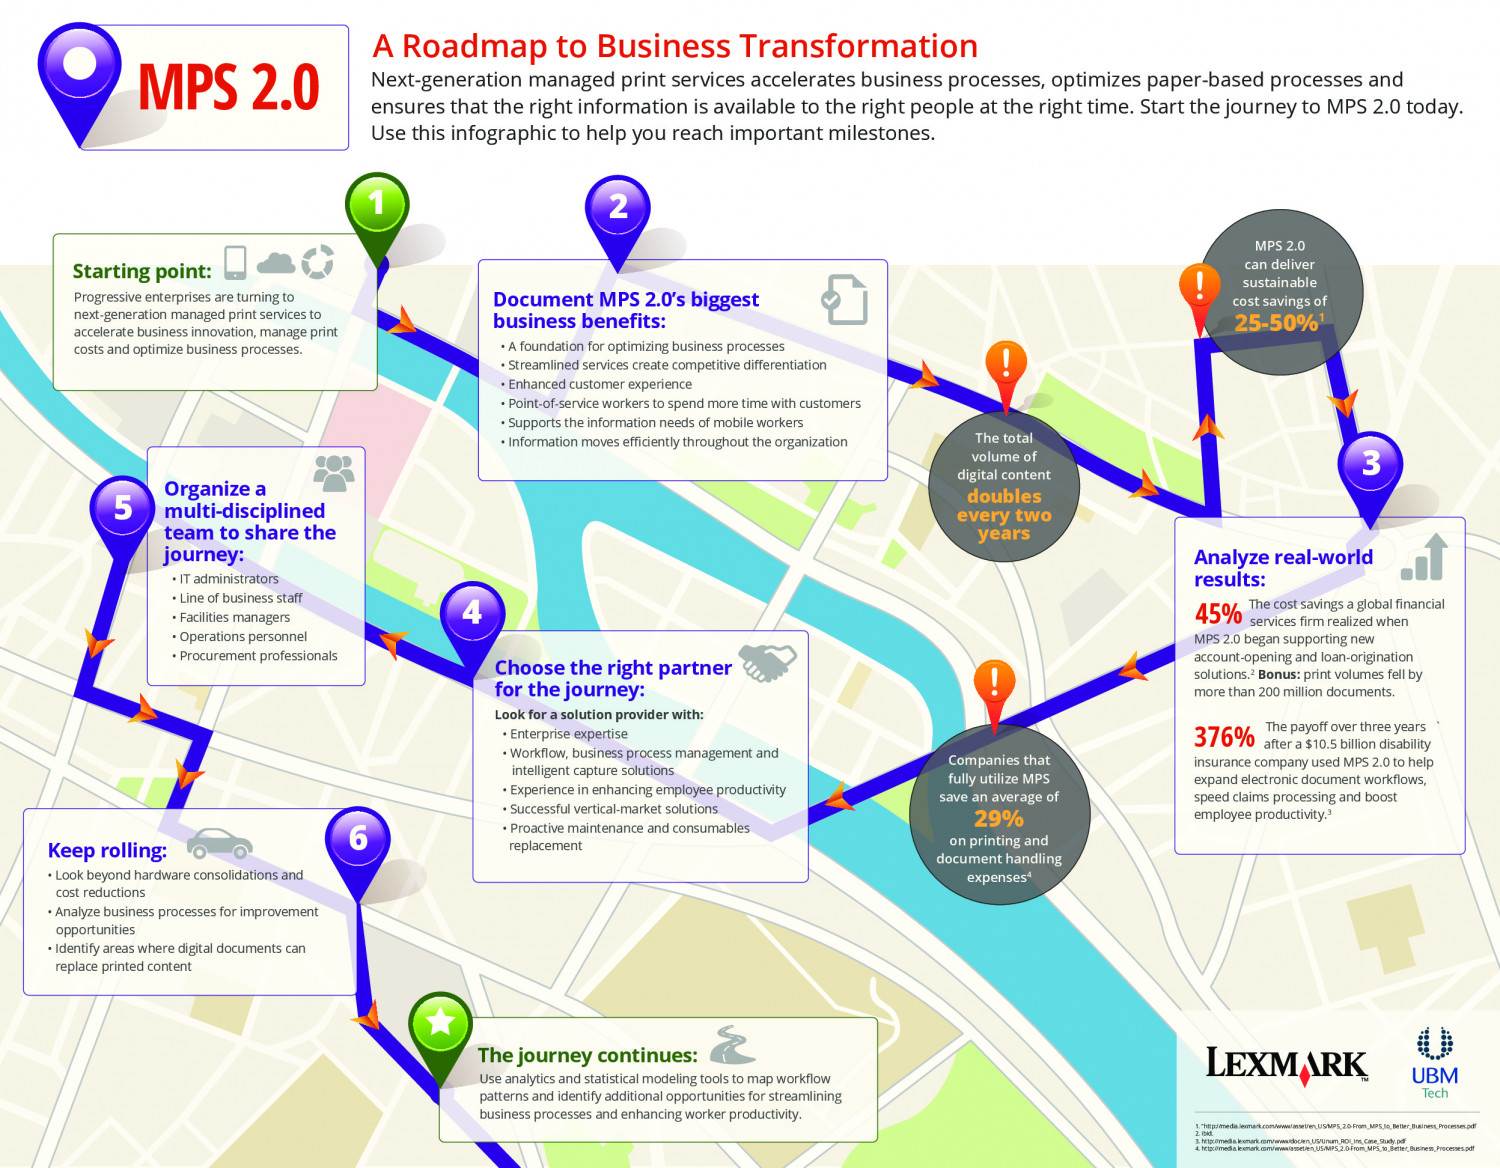 mps 20 a roadmap to business transformation infographic